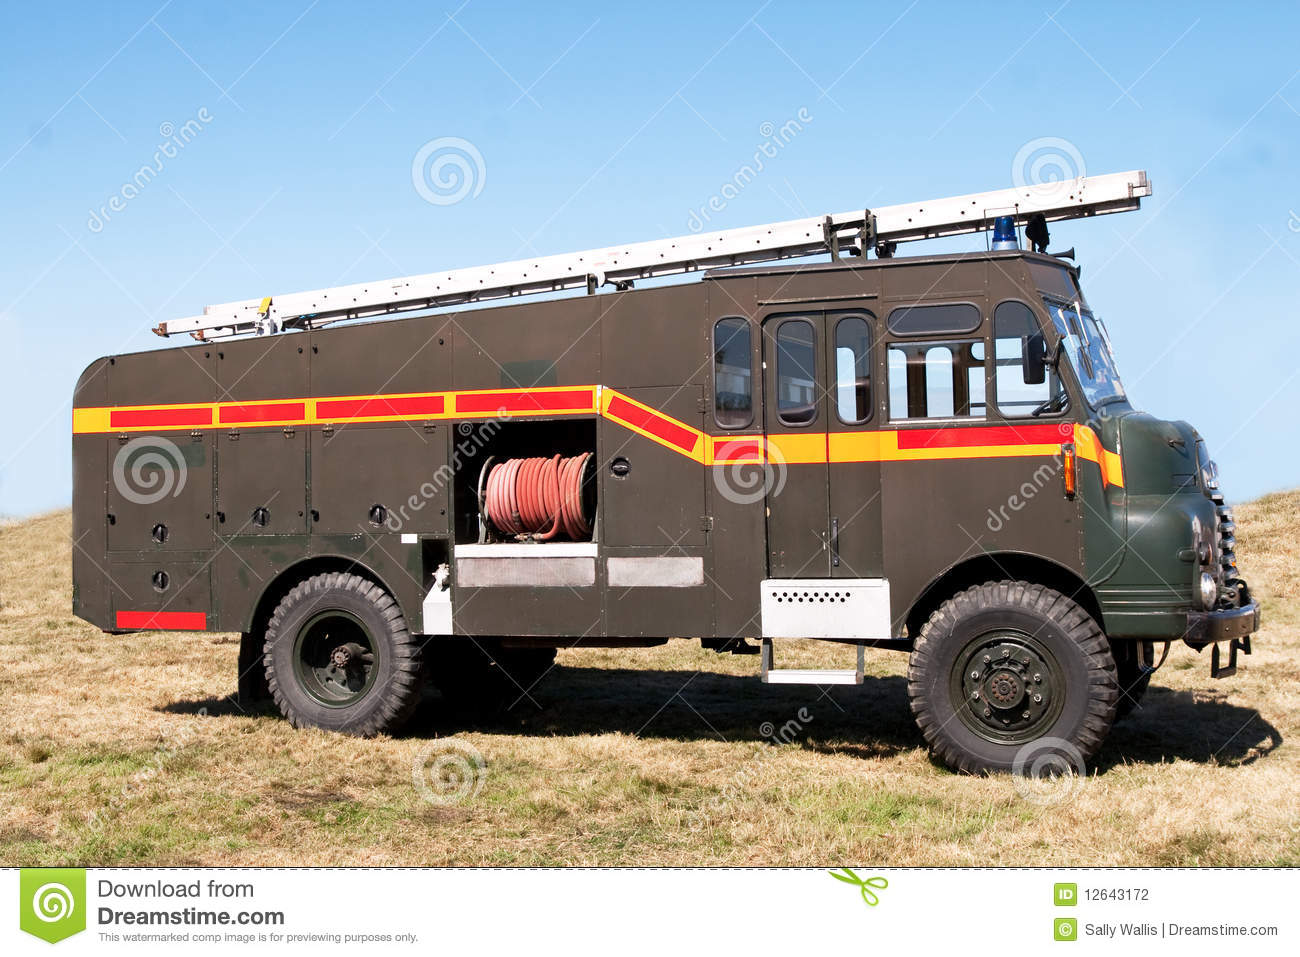 Old fashioned fire-truck stock photo. Image of elderly - 12643172